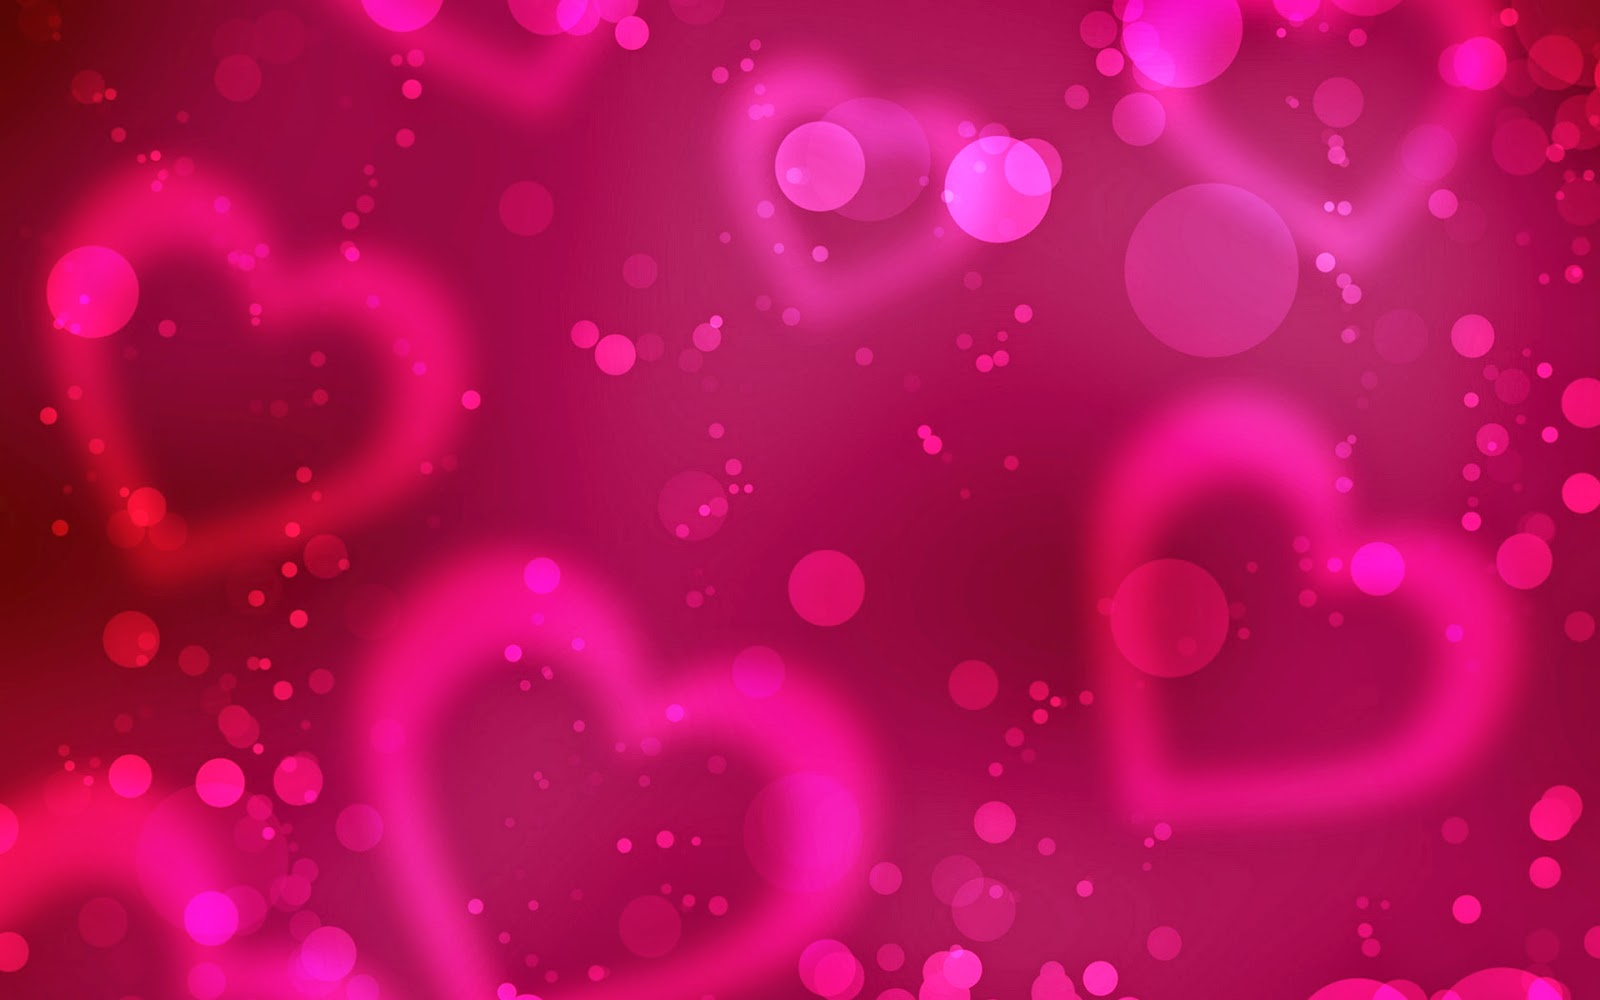 Romantic Love Heart Designs HD Cover Wallpaper